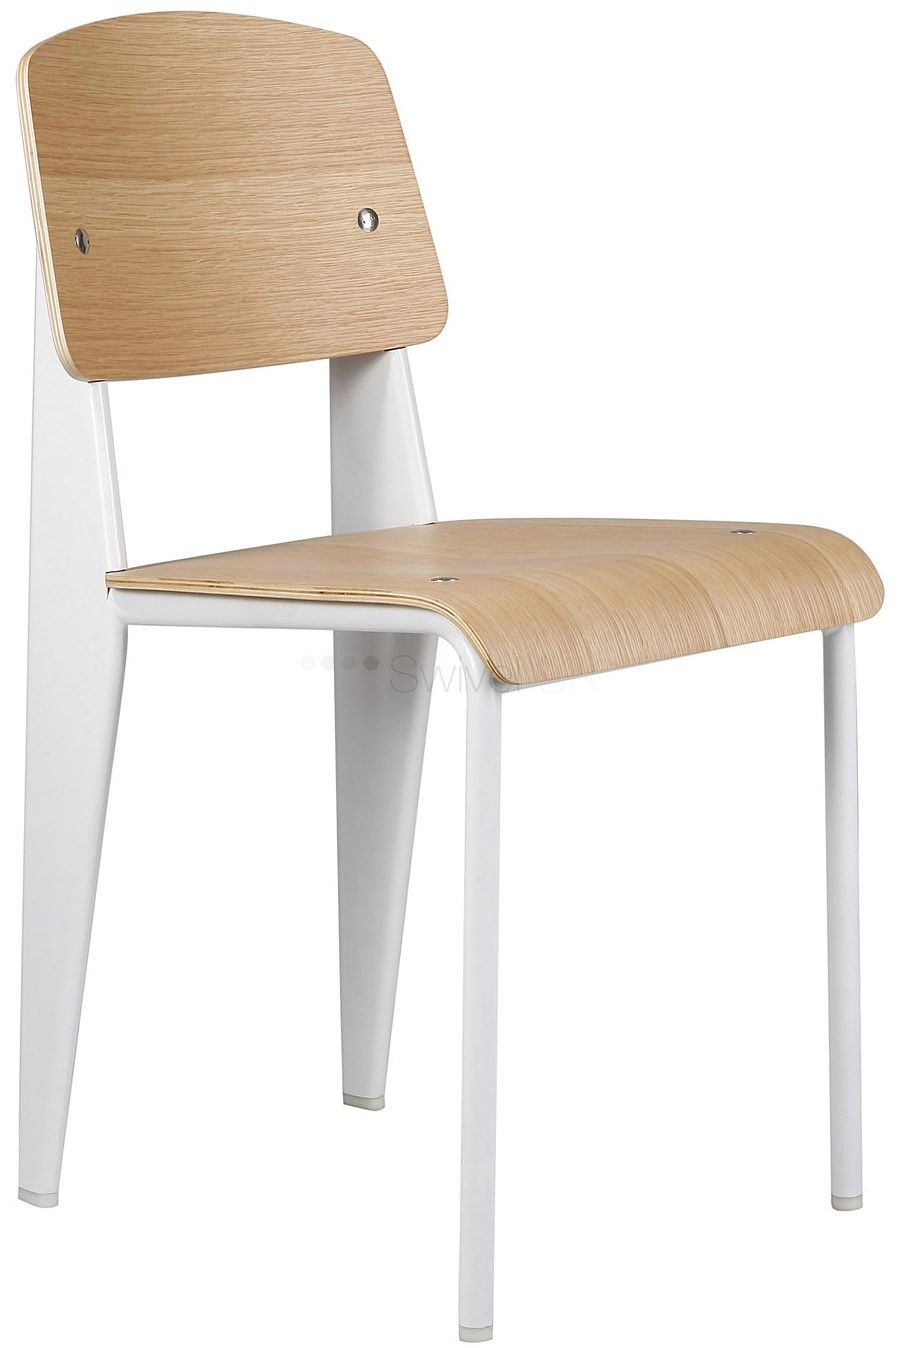 Reproductie Design Stoelen.Standard Chair Chair Furniture Reproduction Furniture